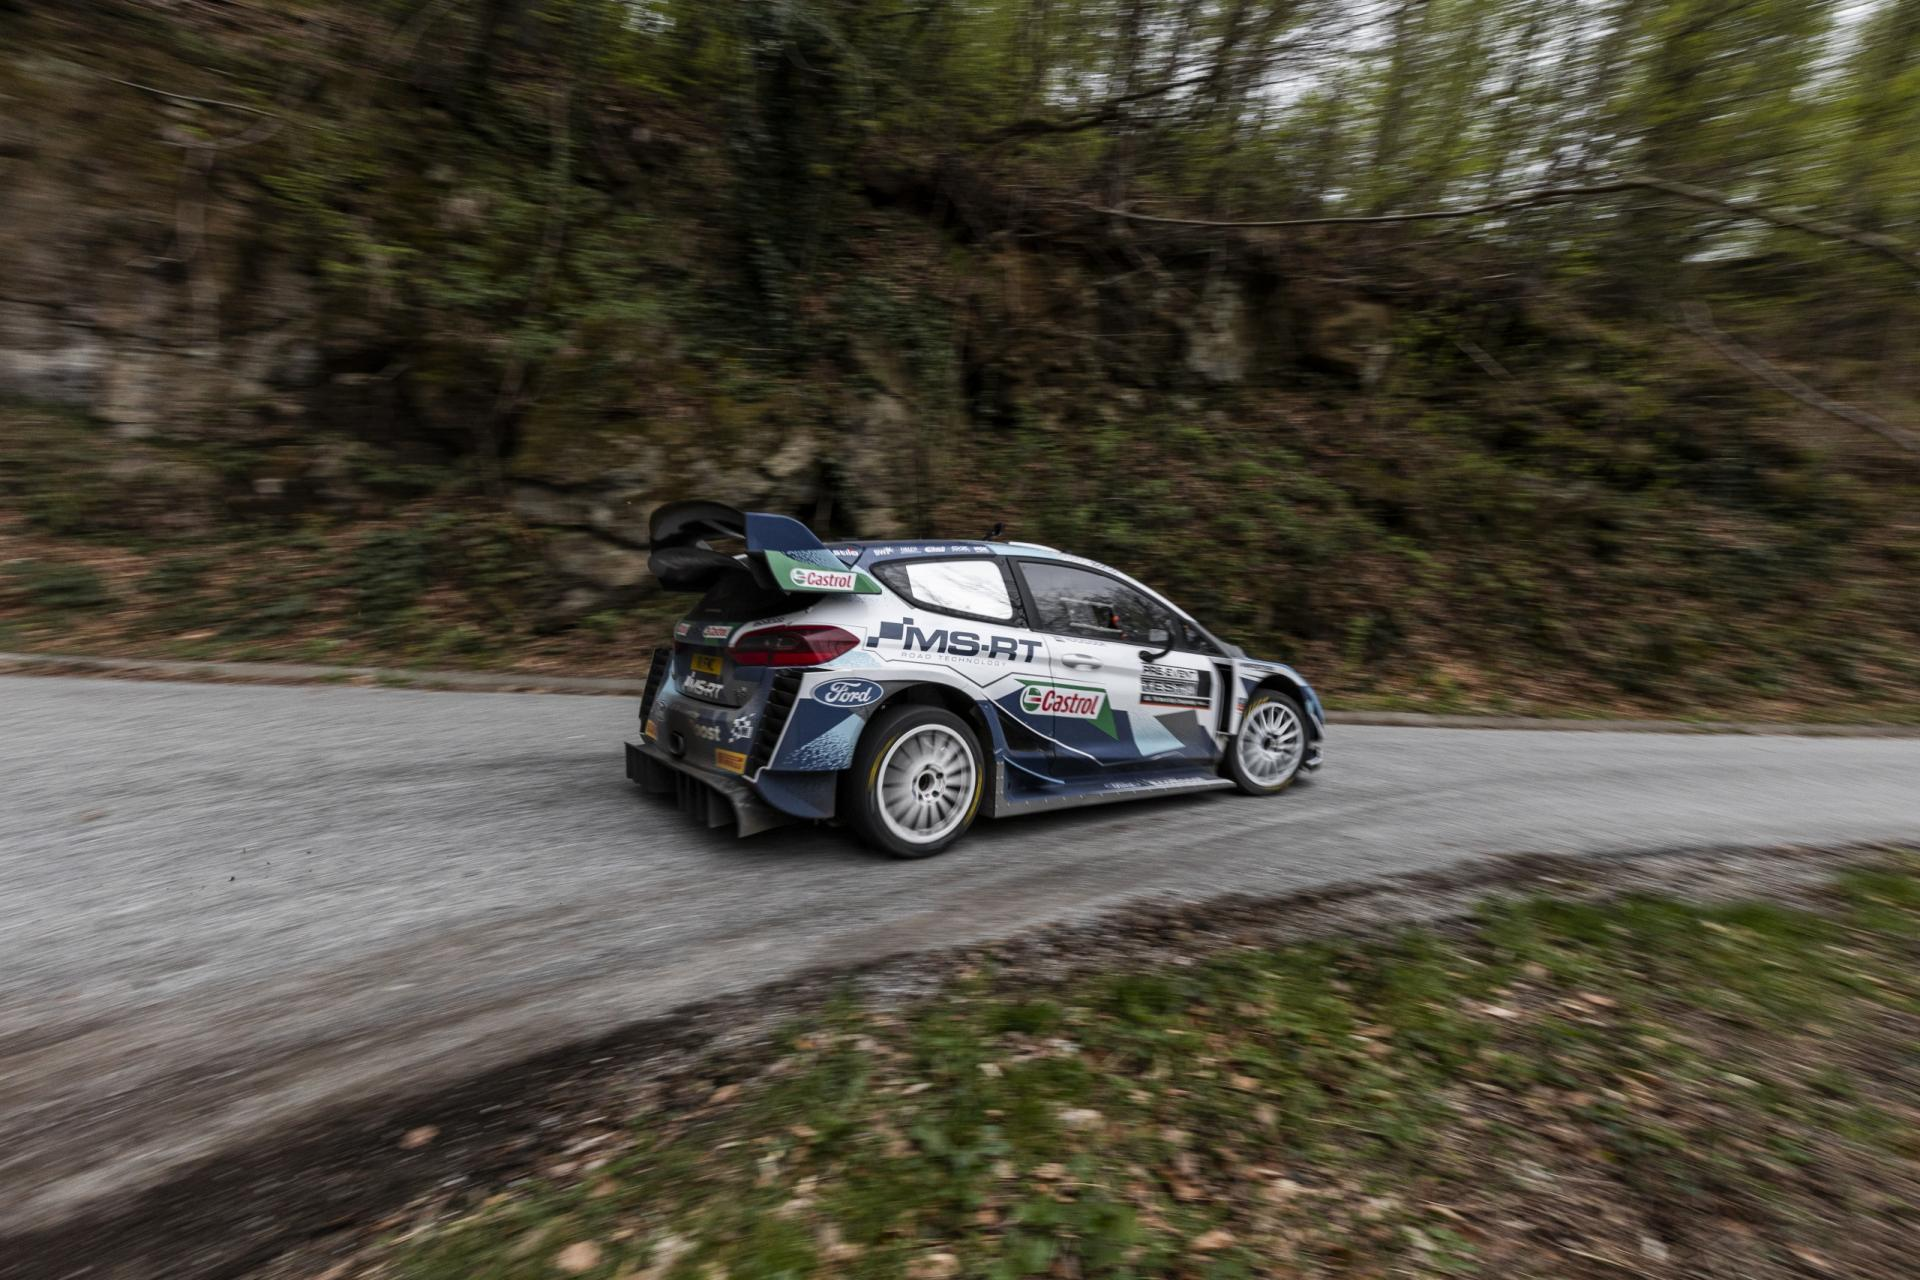 Adrien Fourmaux (driver) and Martin Sinkovic (co-driver) perform during SI WRC co-driving experience with Adrien Fourmaux at Brezova Gora, Croatia on April 17, 2021.